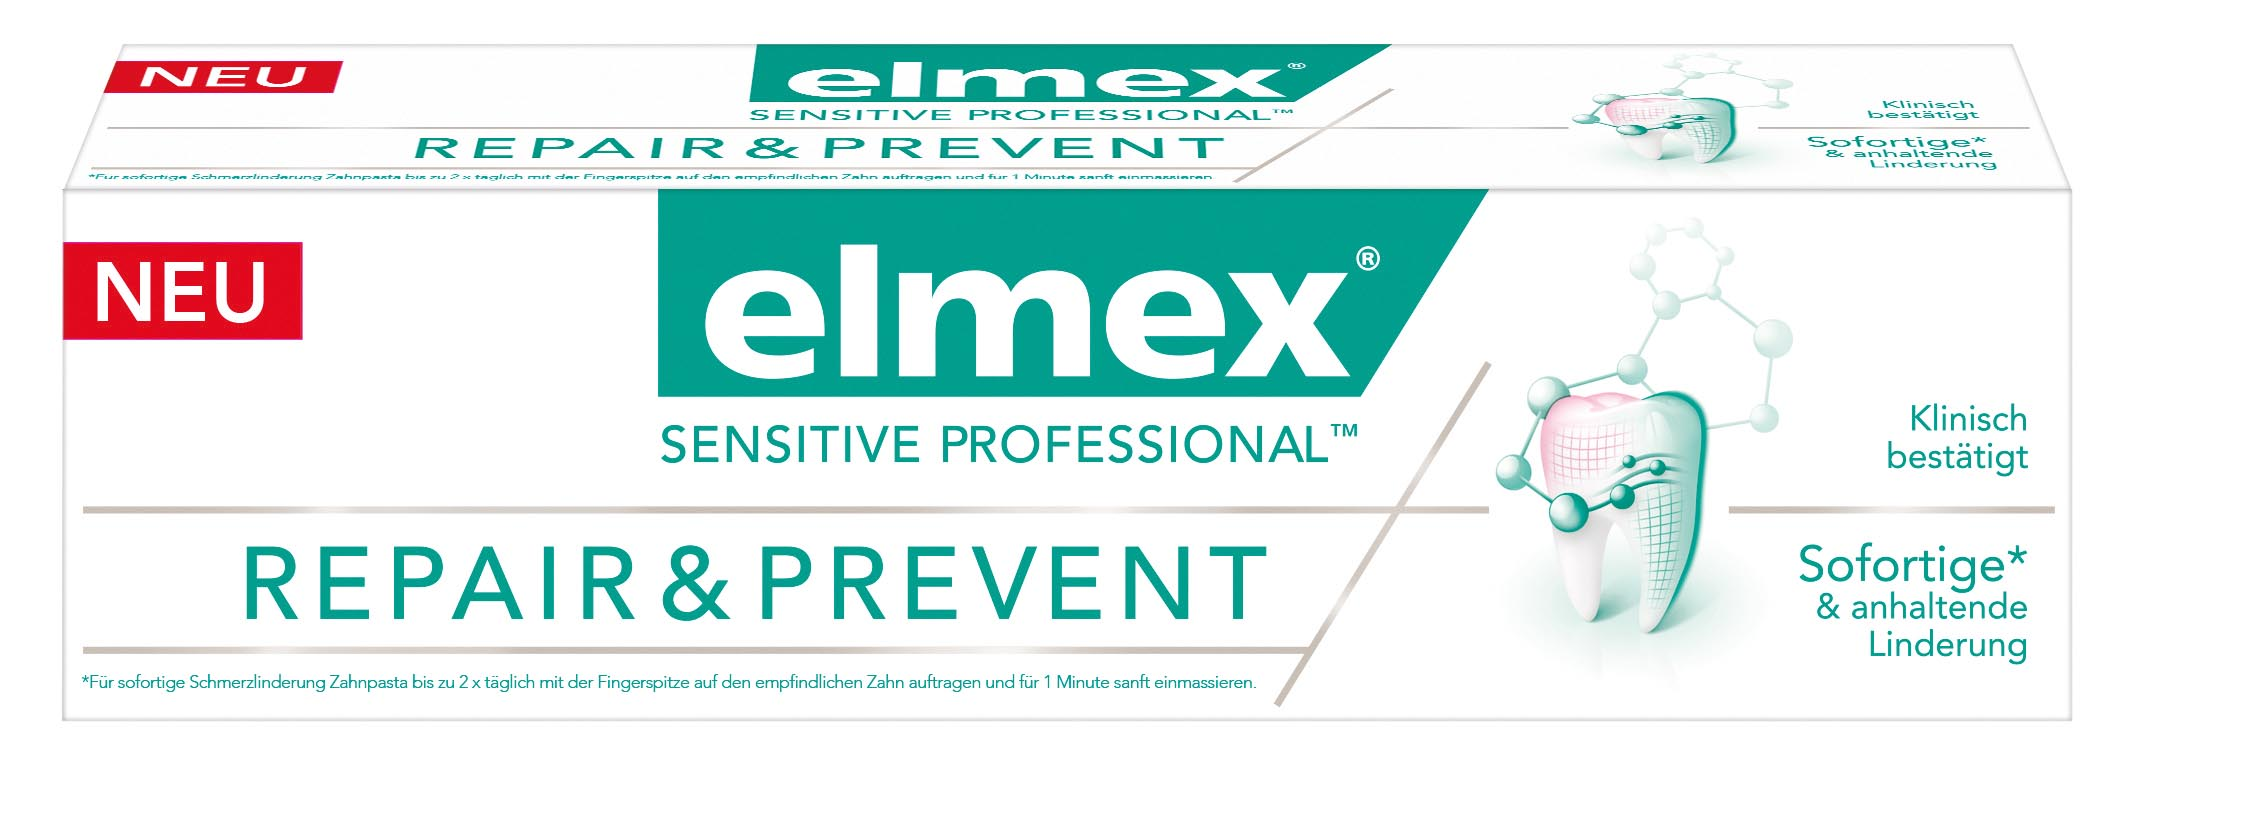 elmex_SP_RepairPrevent